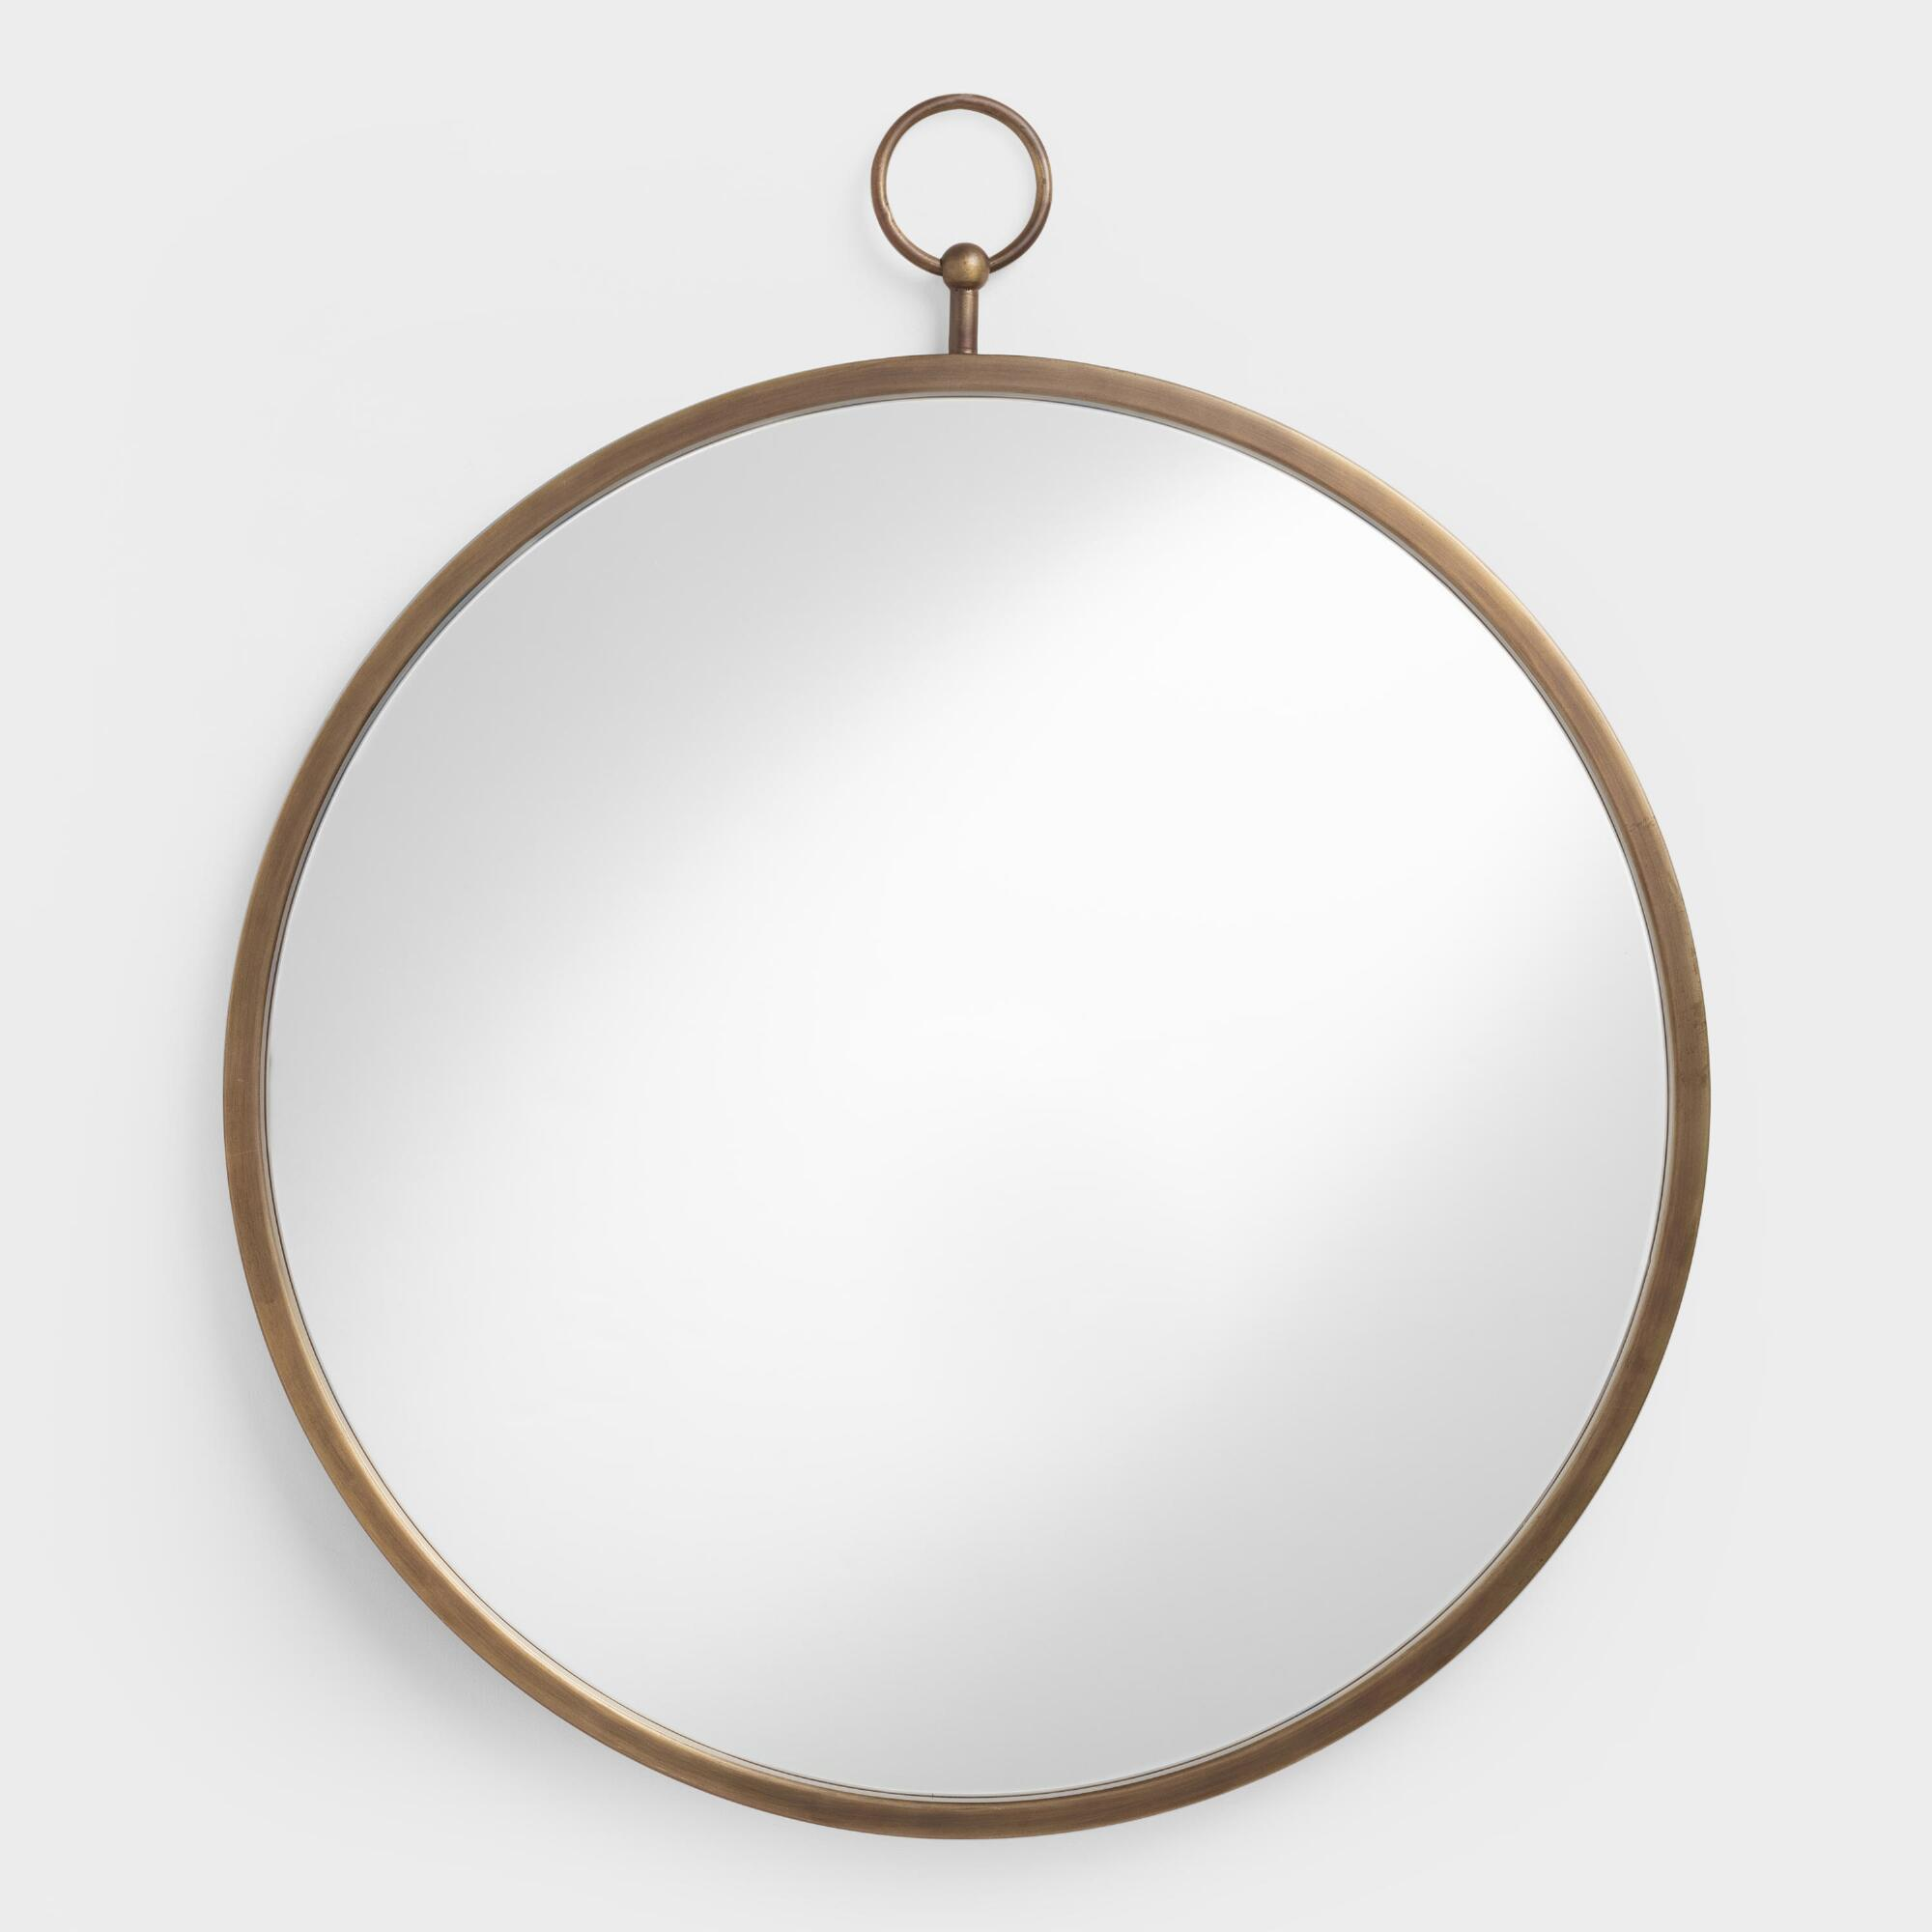 Brass metal loop mirror world market for Mirror o mirror